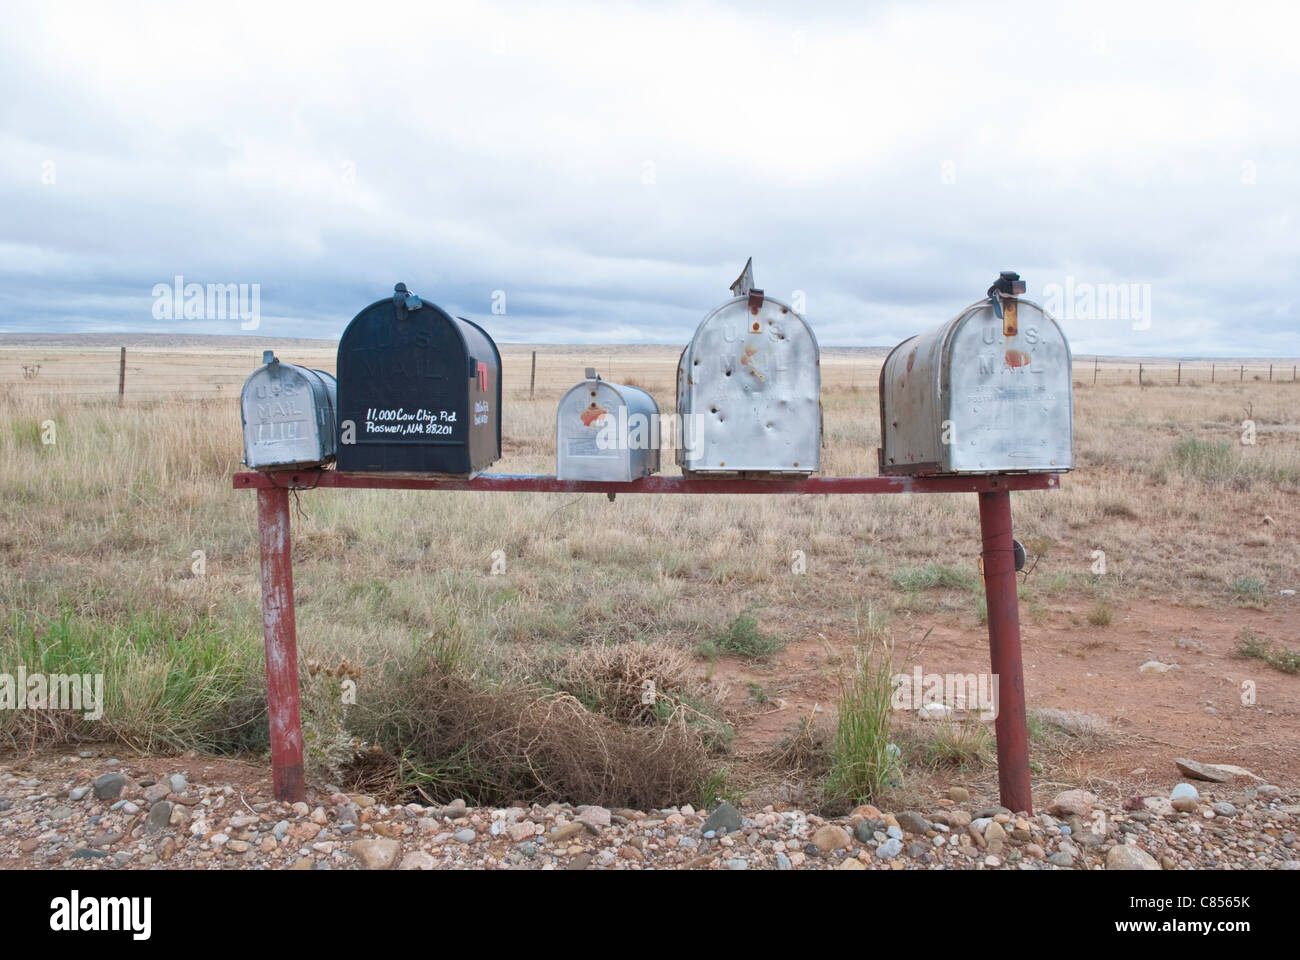 Lonely mailboxes sit at the end of Cow Chip Road in rural New Mexico. - Stock Image